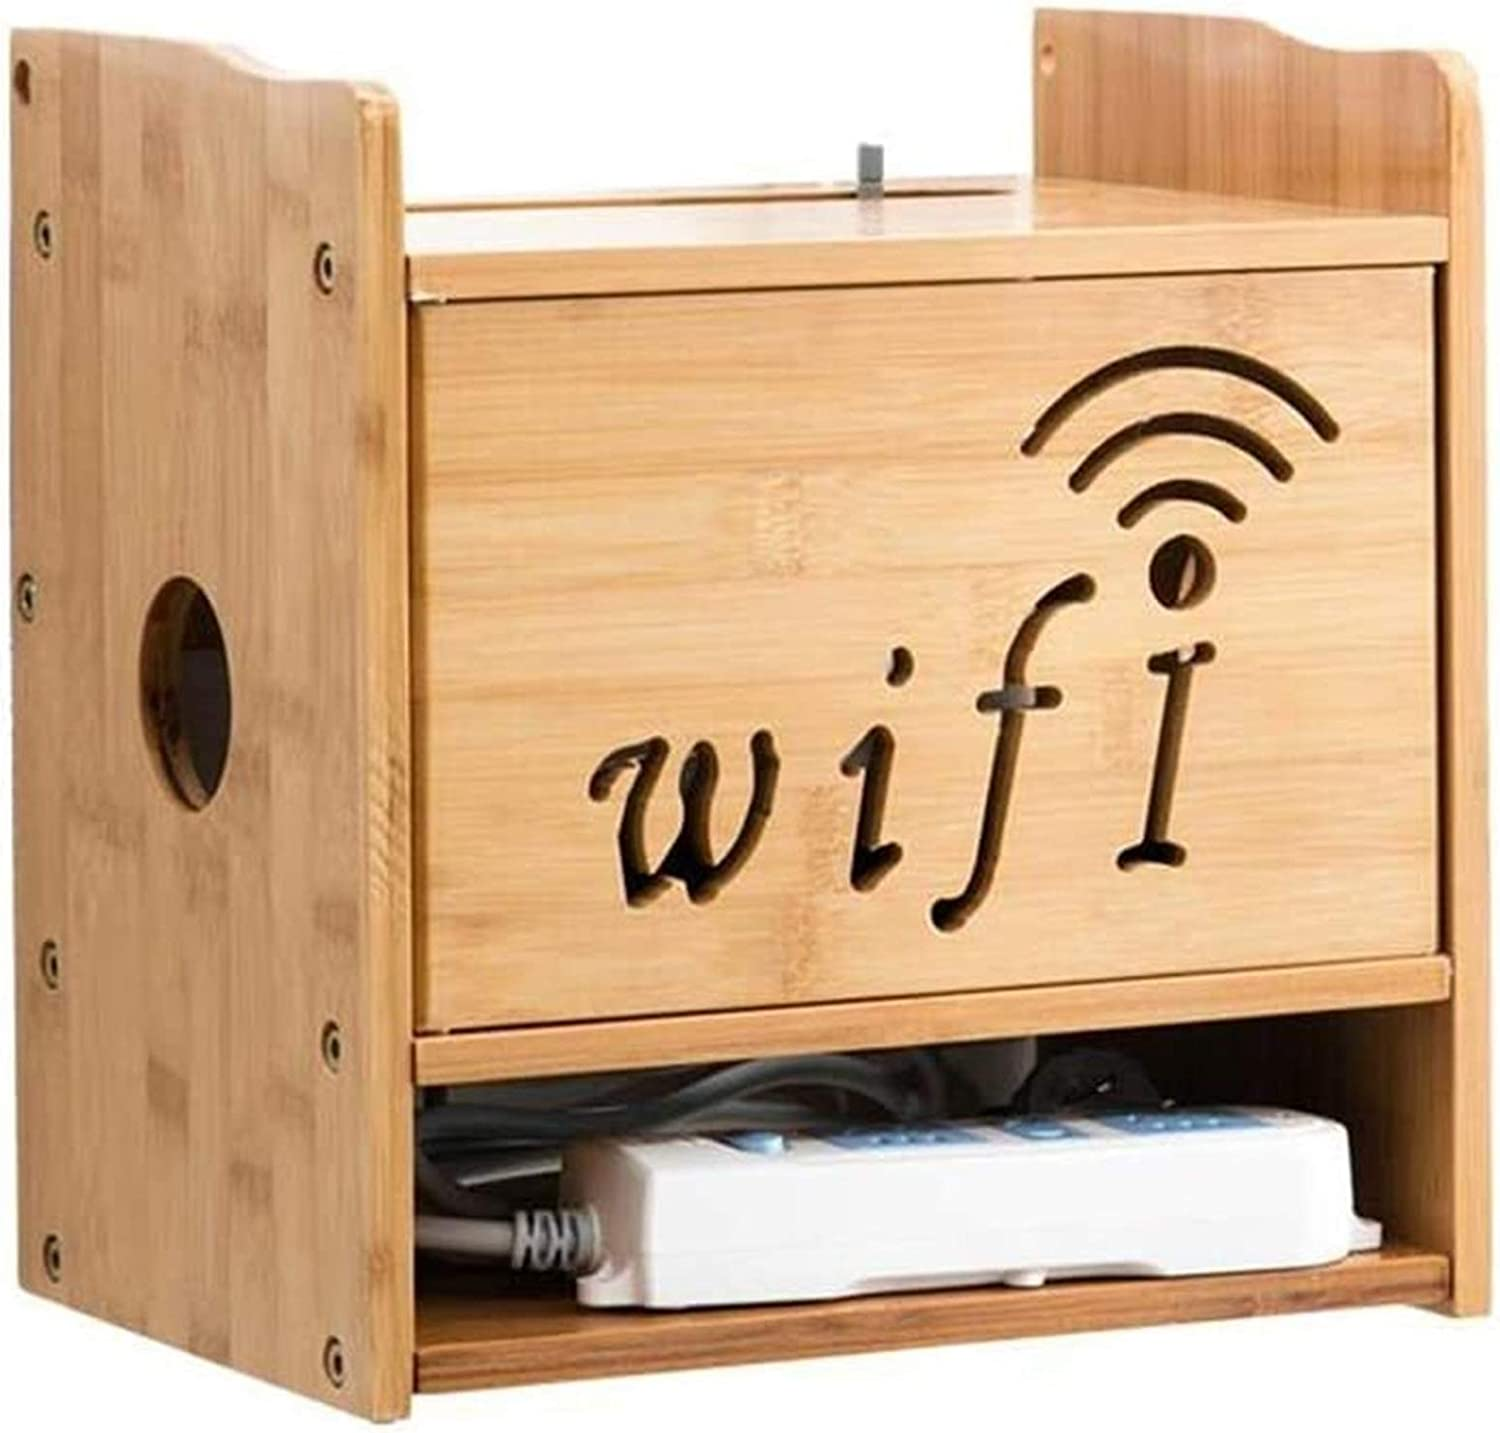 BECCYYLY Router famous Rack Shelves WiFi Bracket , Box Low price Set-